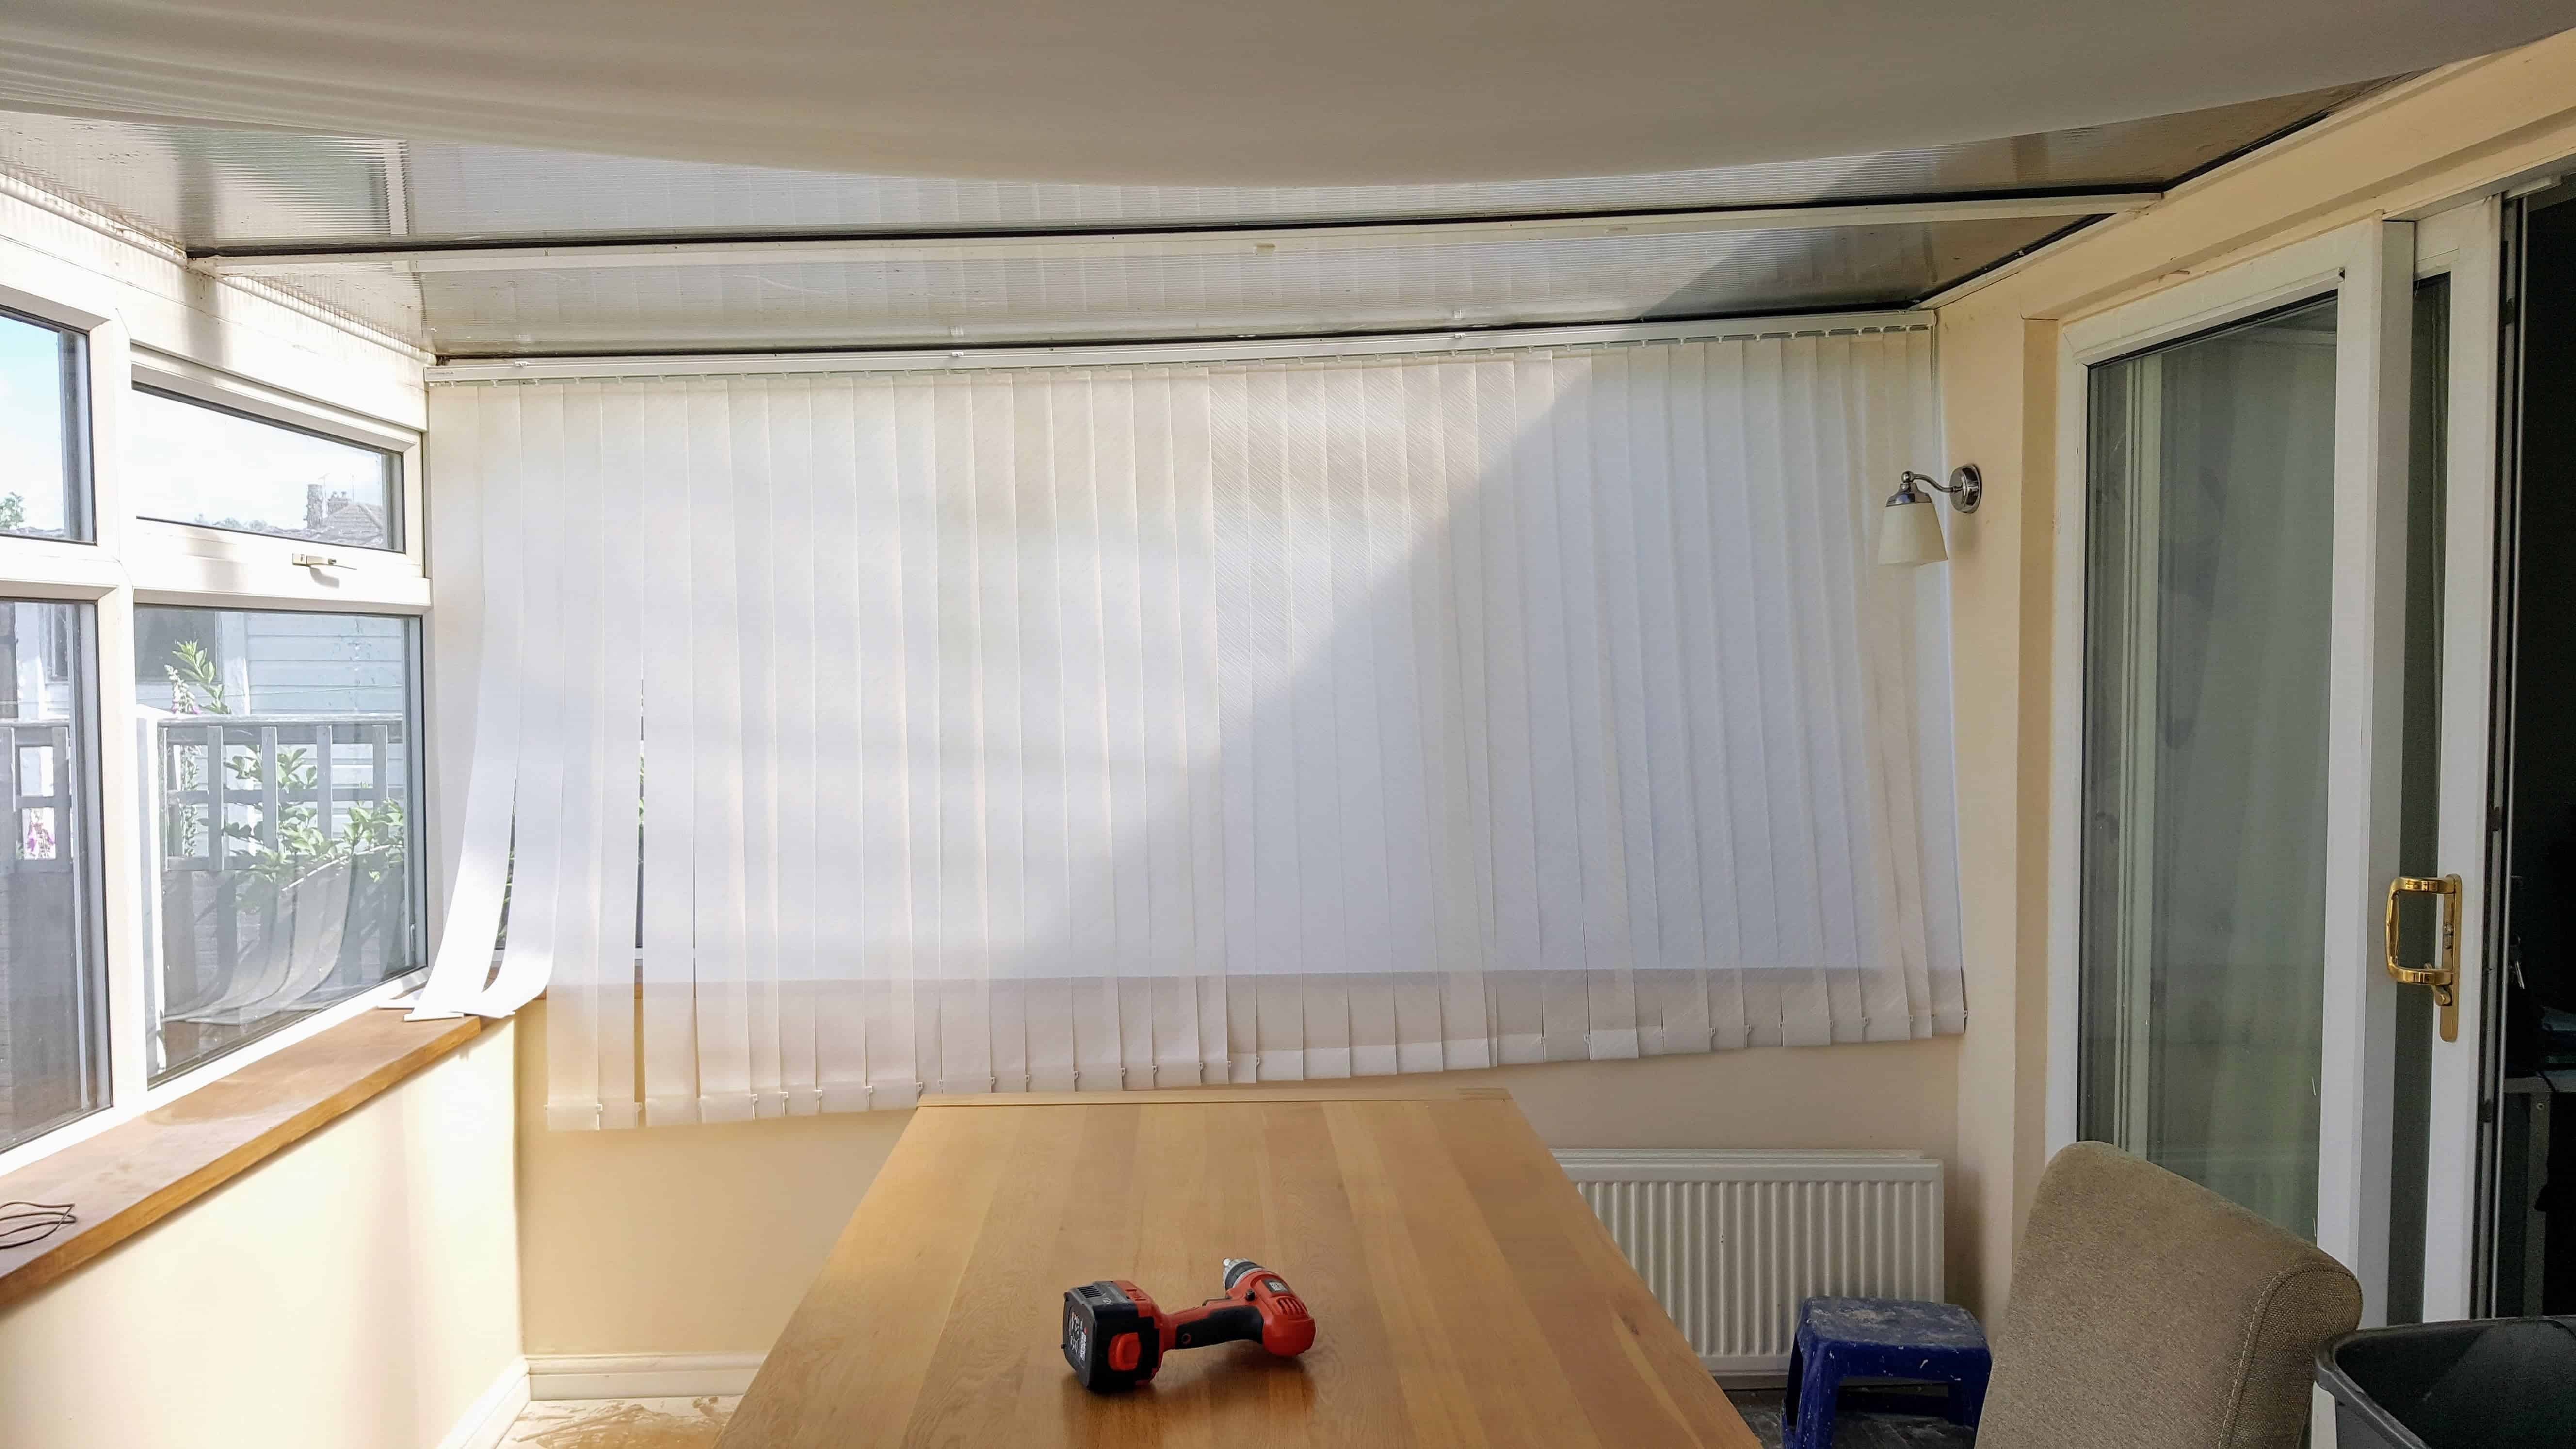 blind corded to guides thick aluminum cheap coils window blinds find cut measure get quotations for essentials bali shopping